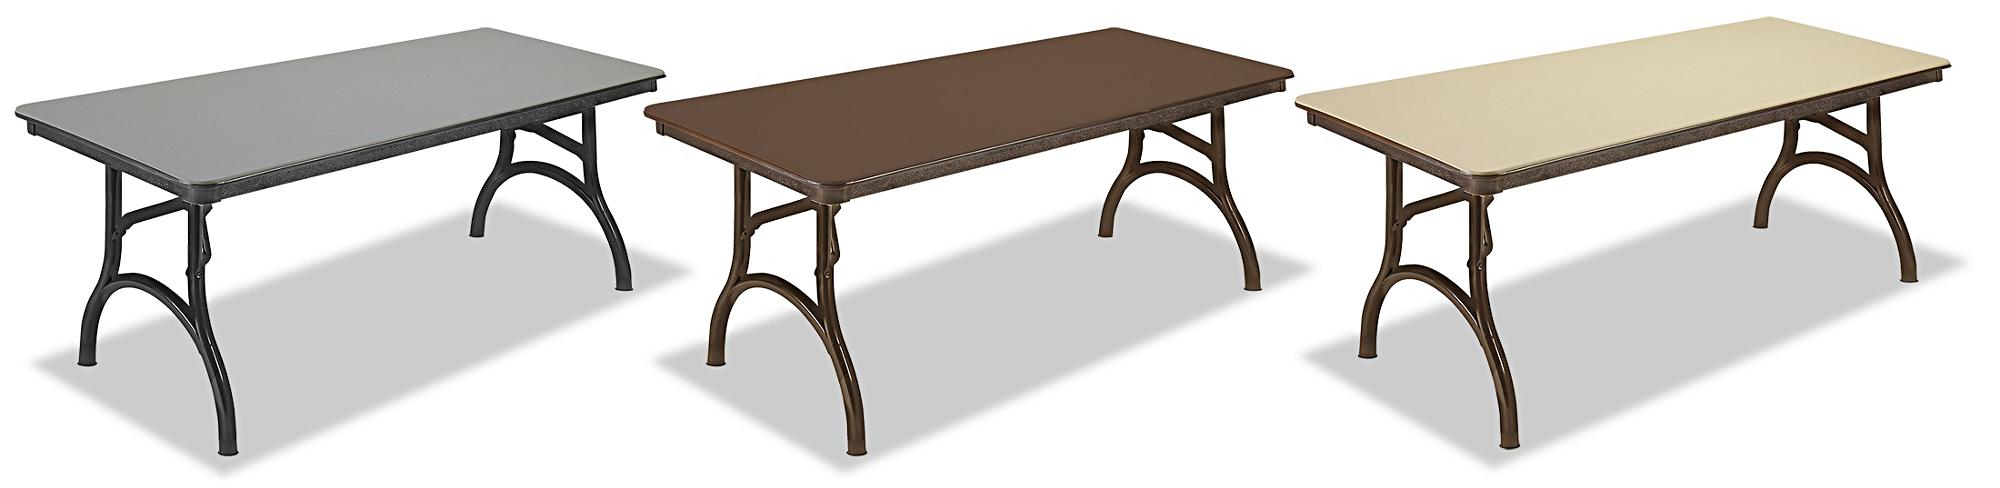 ABS Folding Tables